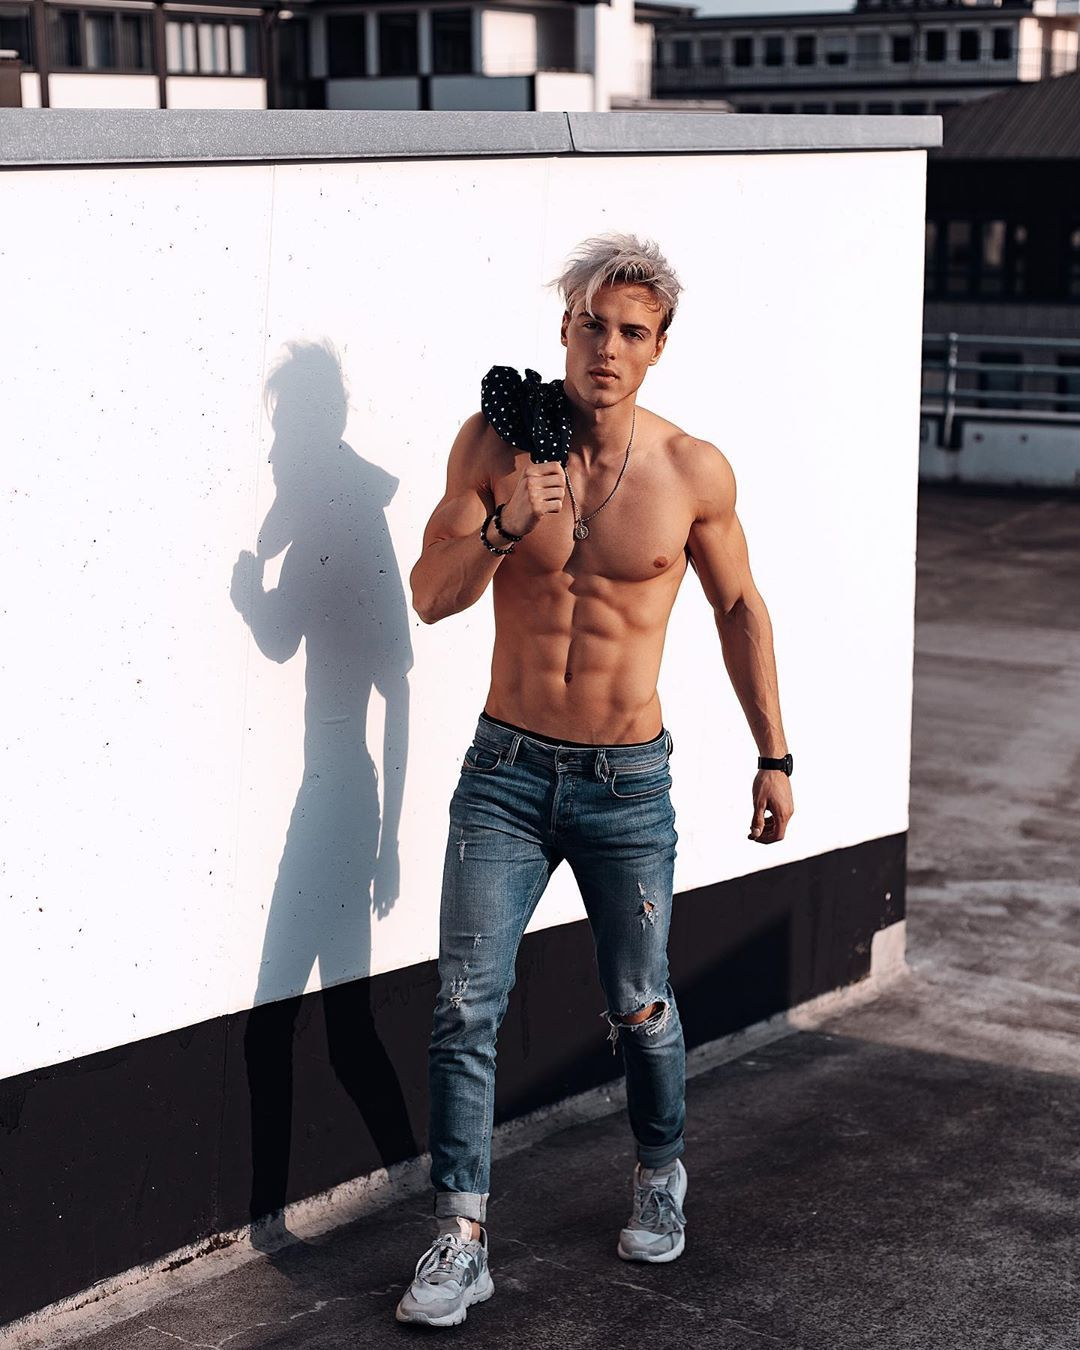 Hagen Richter S Instagram Photo No Shirts Are The Best Shirts Staystrong Focus Vibes Veins Abs Sixpack Model Fitnessm